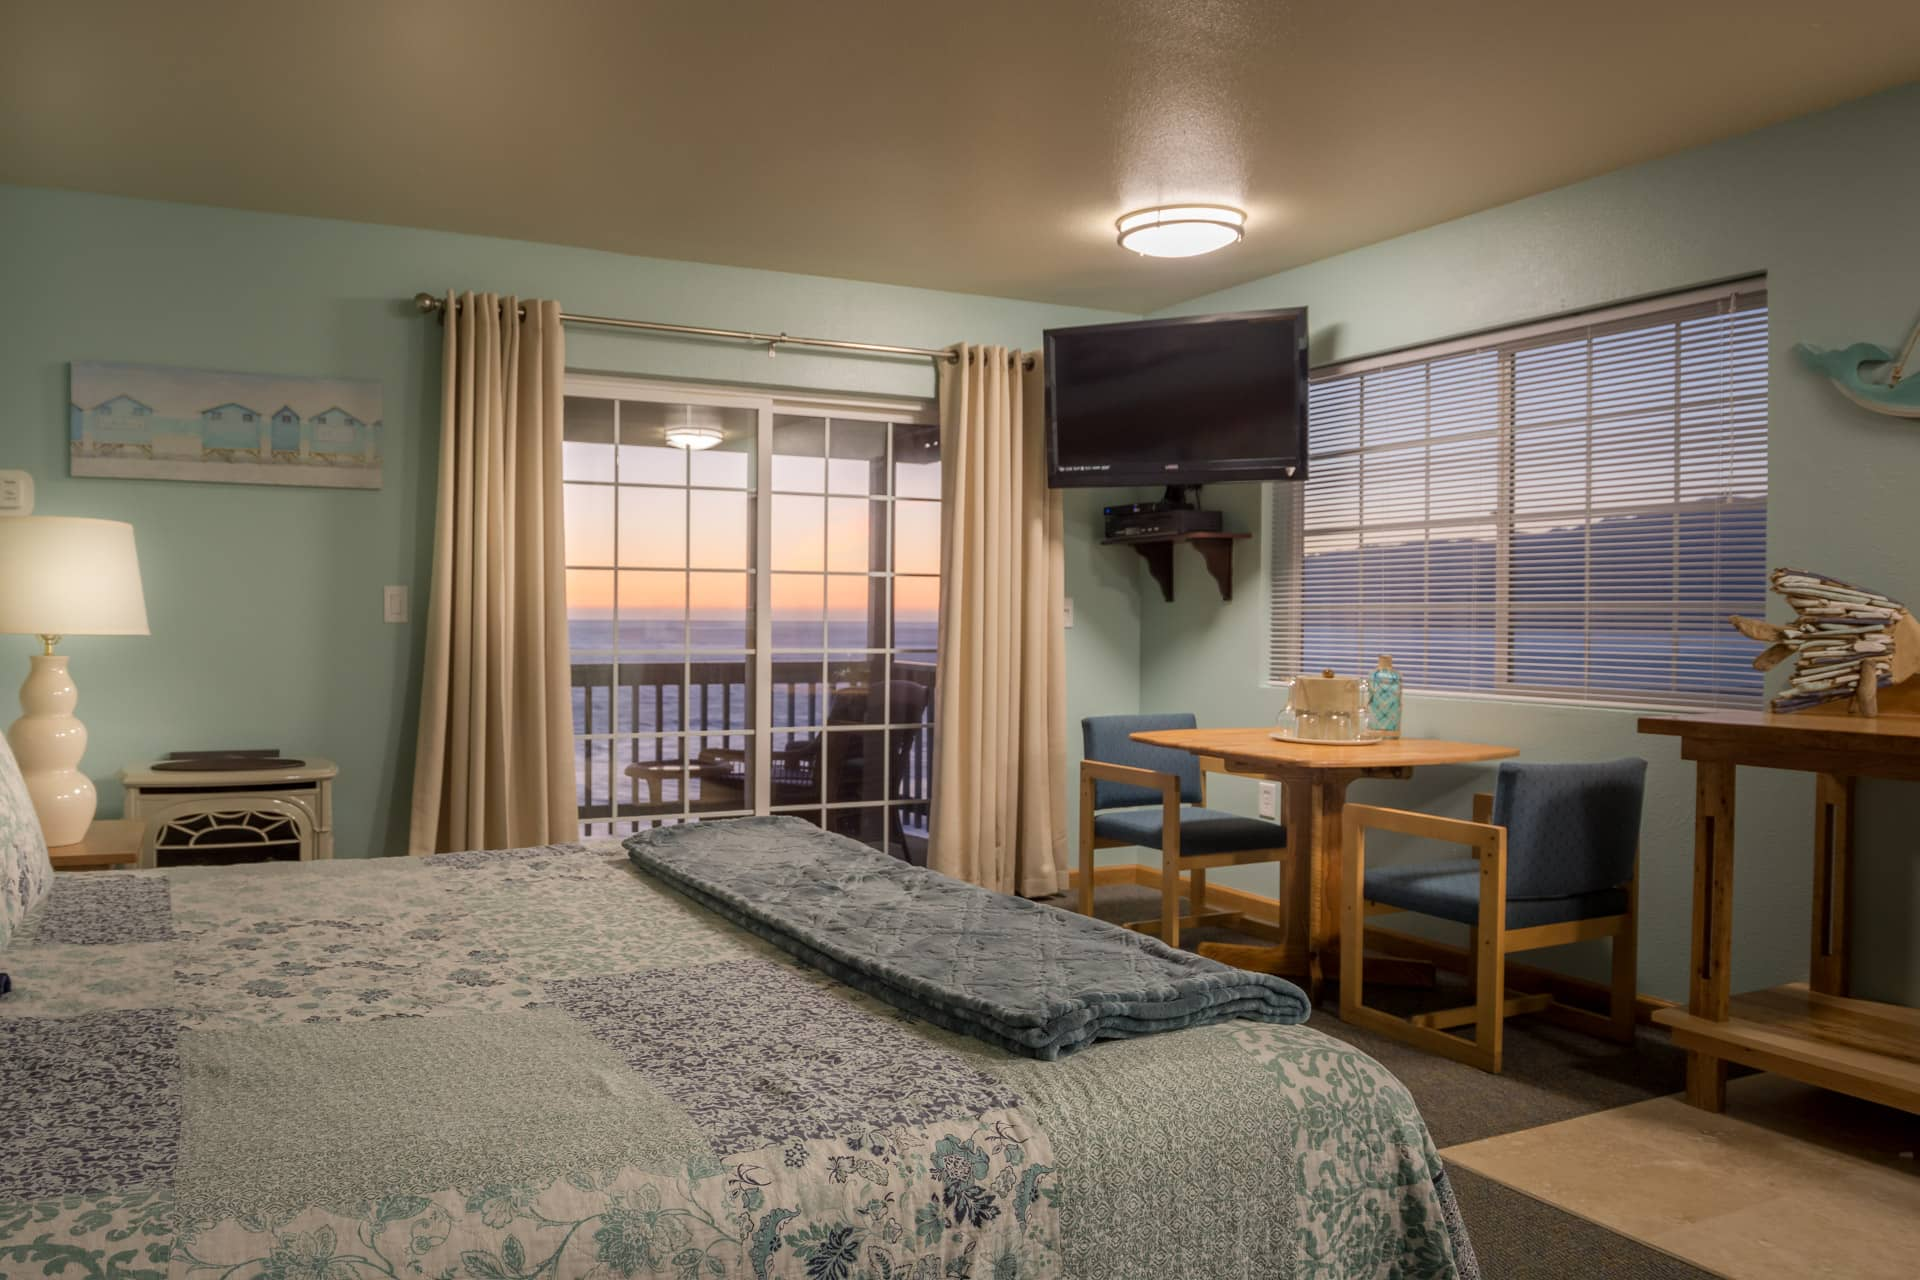 Deluxe Corner Guestroom hotel room at the oceanfront Inn of the Lost Coast Shelter Cove with King size bed, HDTV flatscreen, dining area, and furnished private balcony at sunset with ocean view of Shelter Cove coastline.